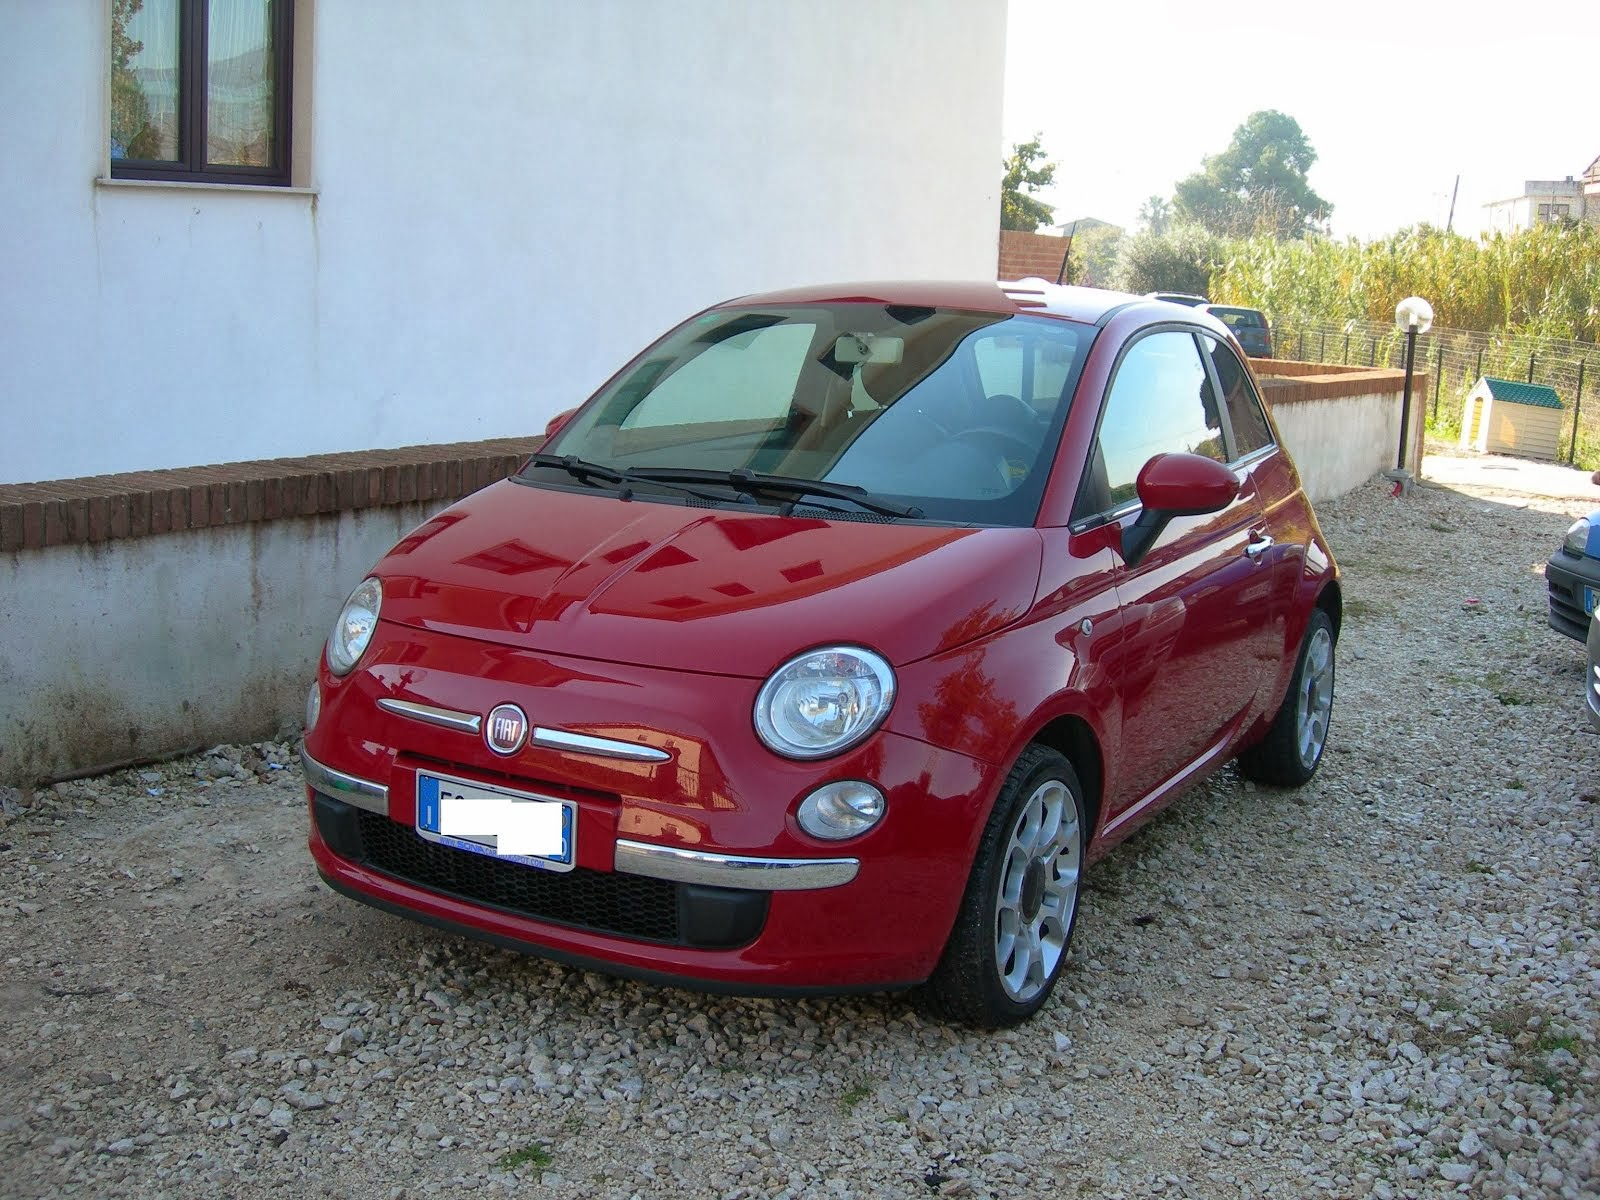 Fiat 500 1.3 m.jet 95 CV Sport S&S Full optional 8.500,00 Euro